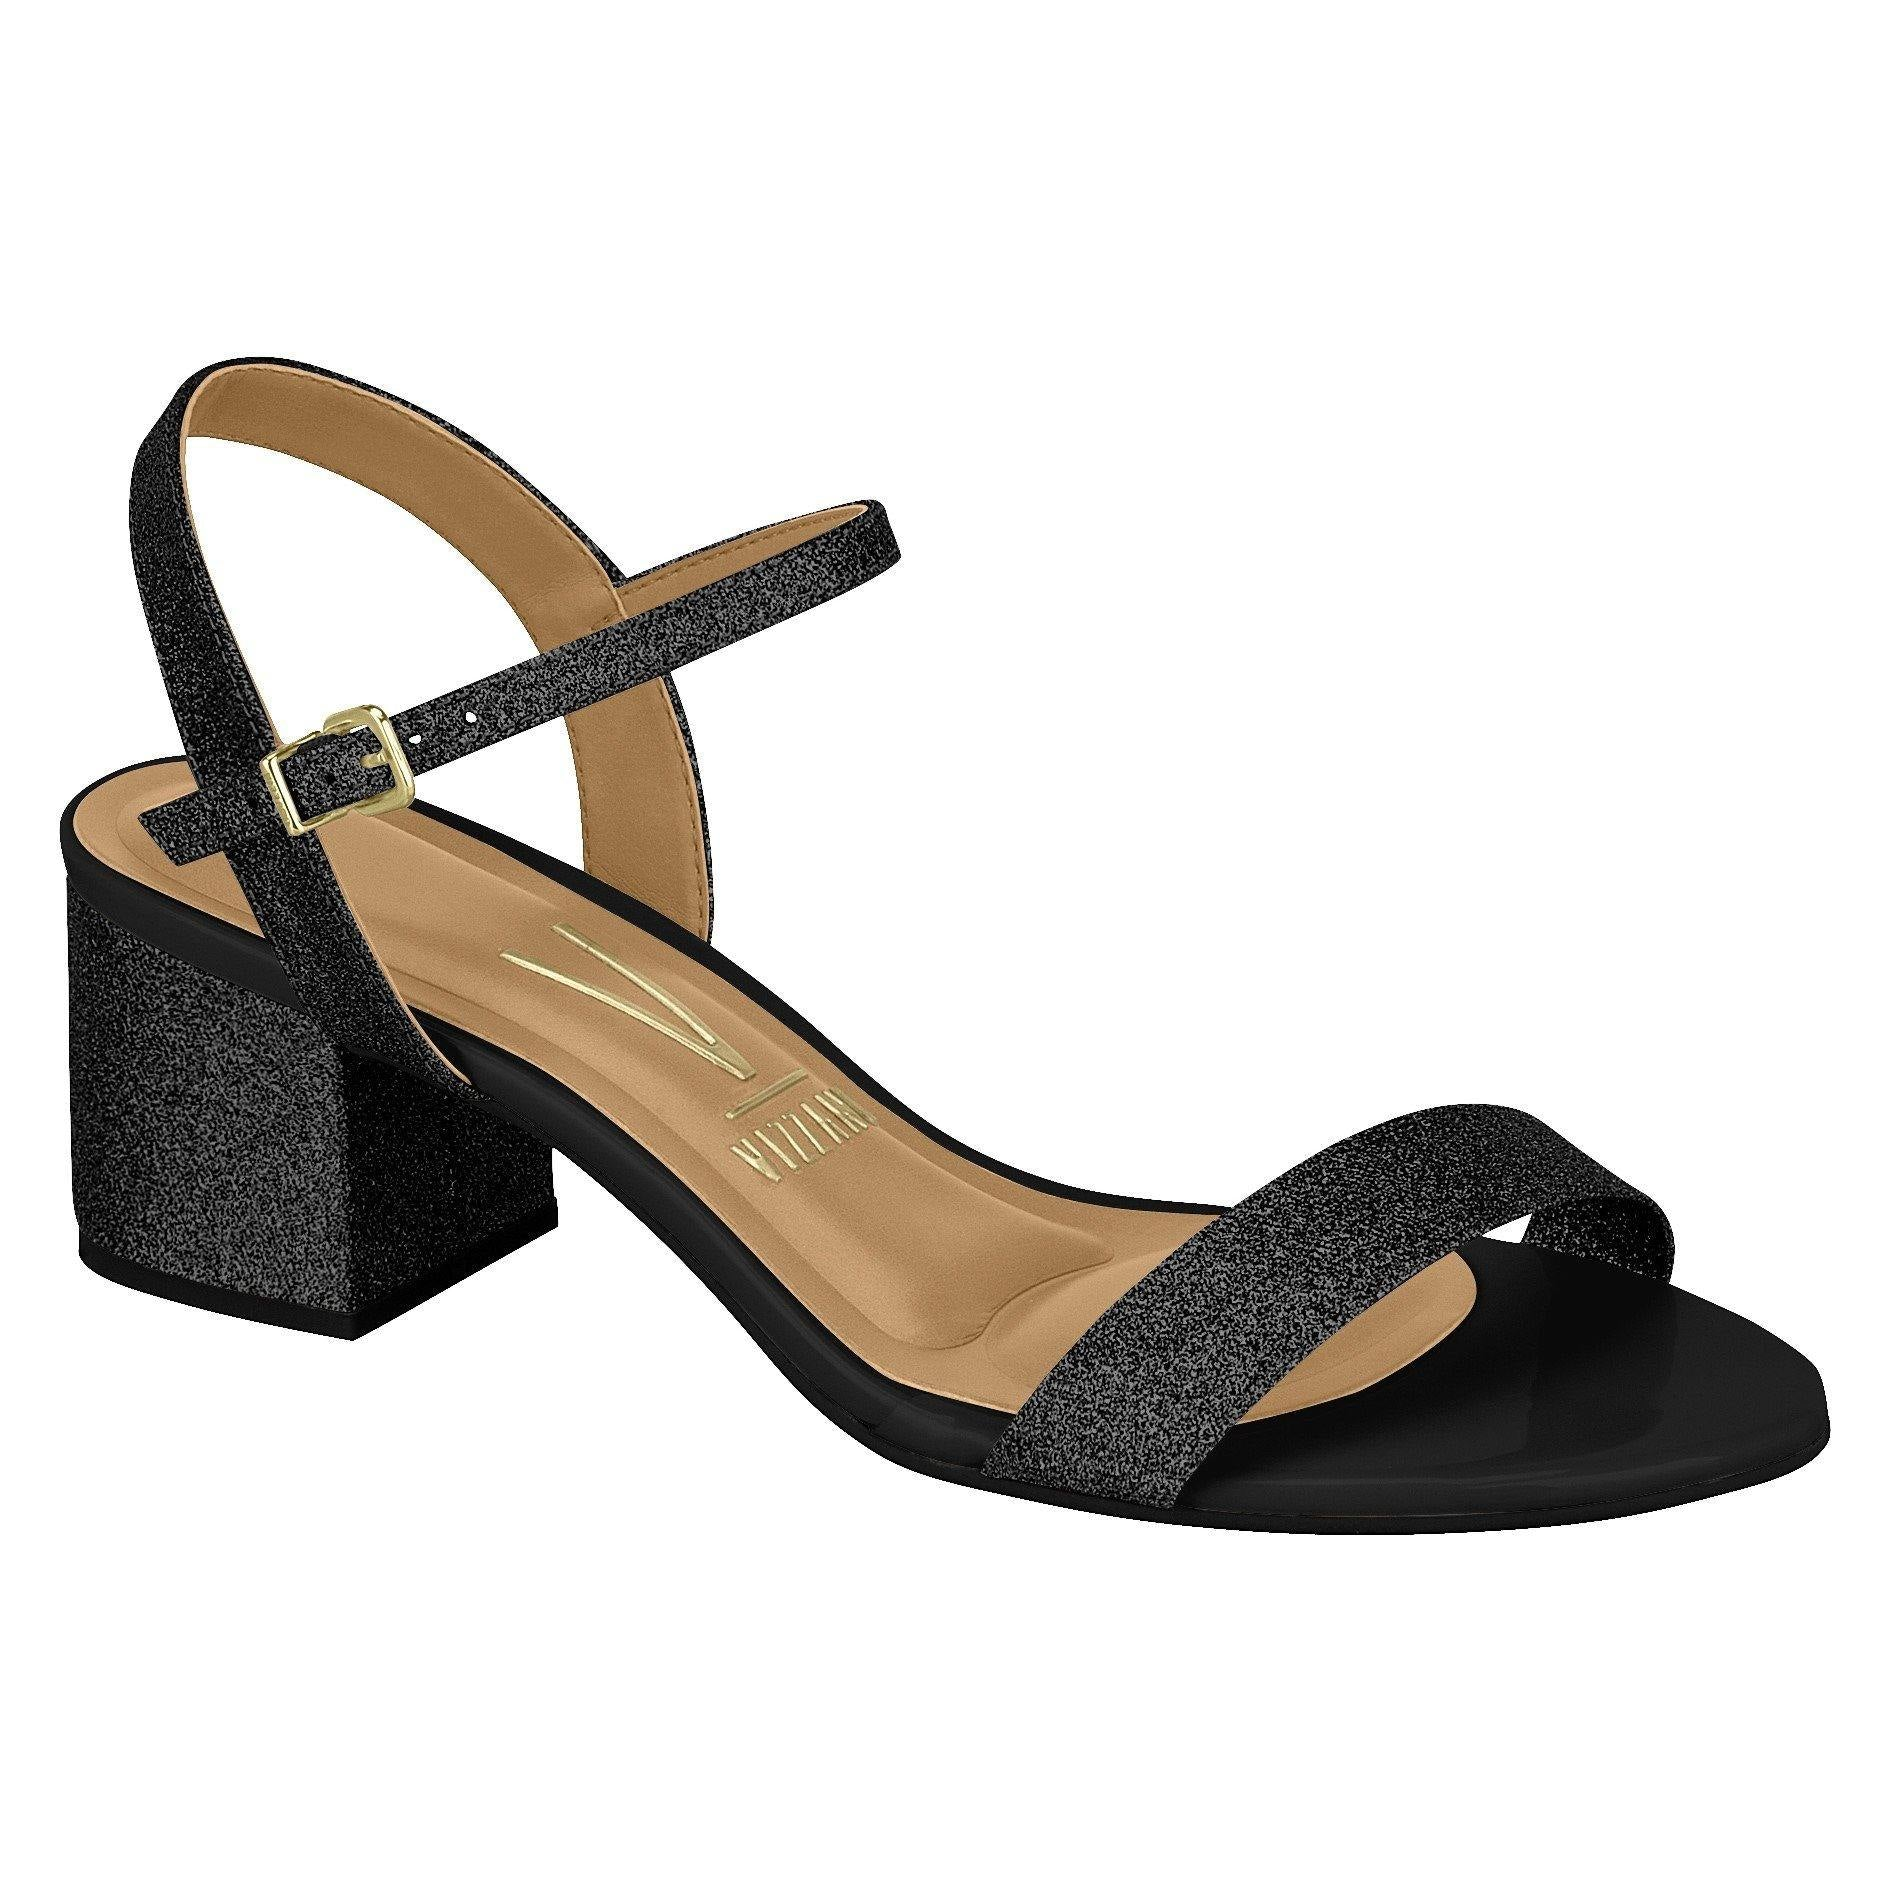 Vizzano 6291-900 Low Heel Sandal in Black Glitter